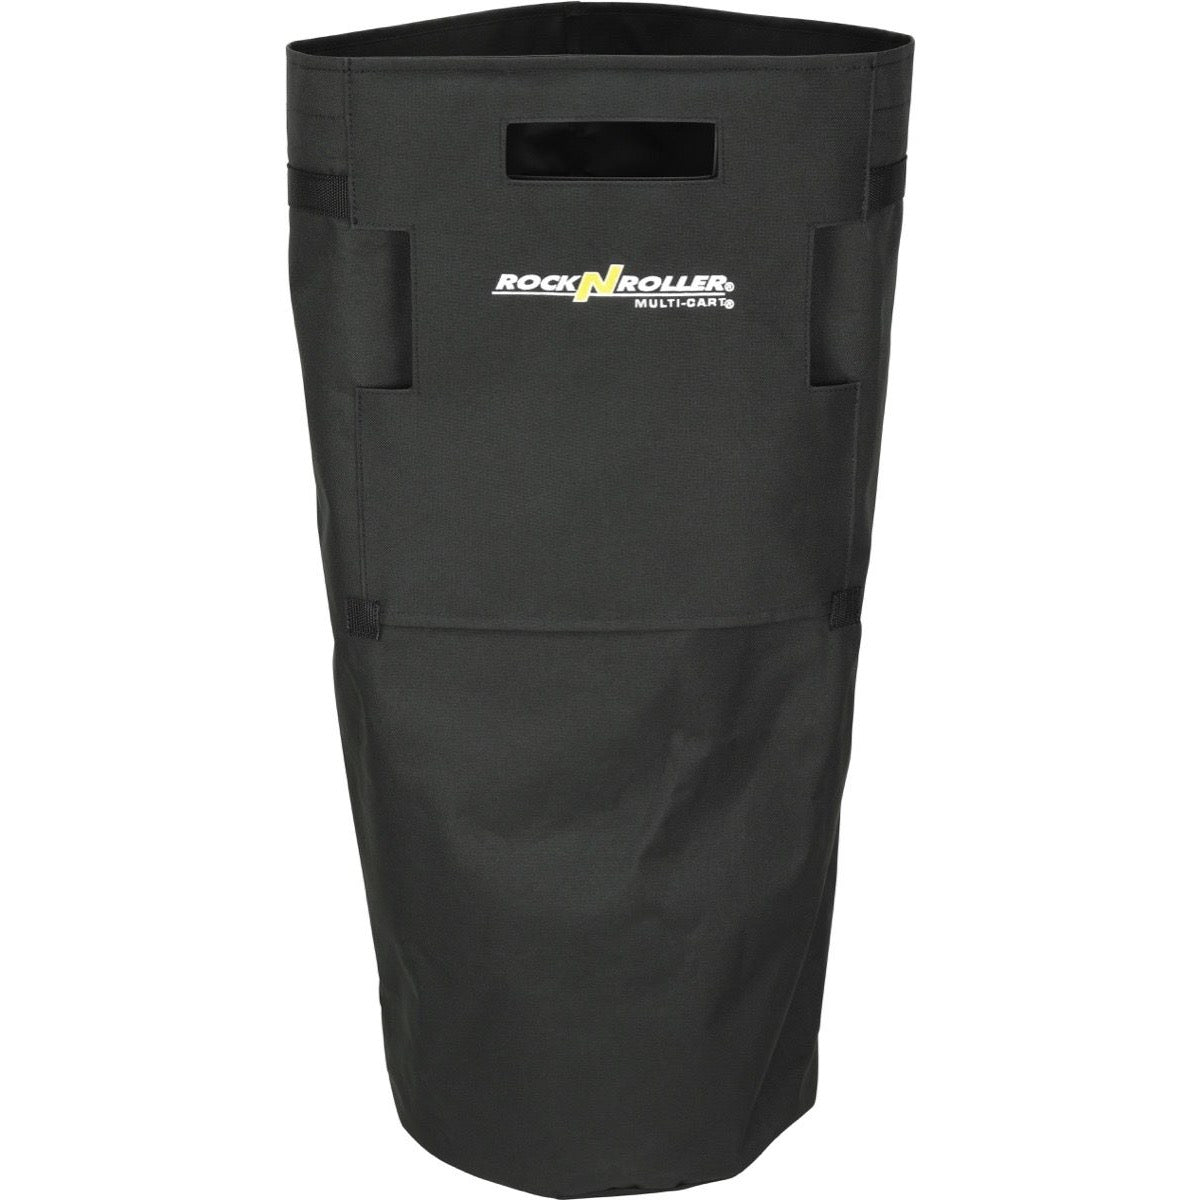 RocknRoller Handle Bag with Rigid Bottom, RSA-HBR6, Fits R6 Carts